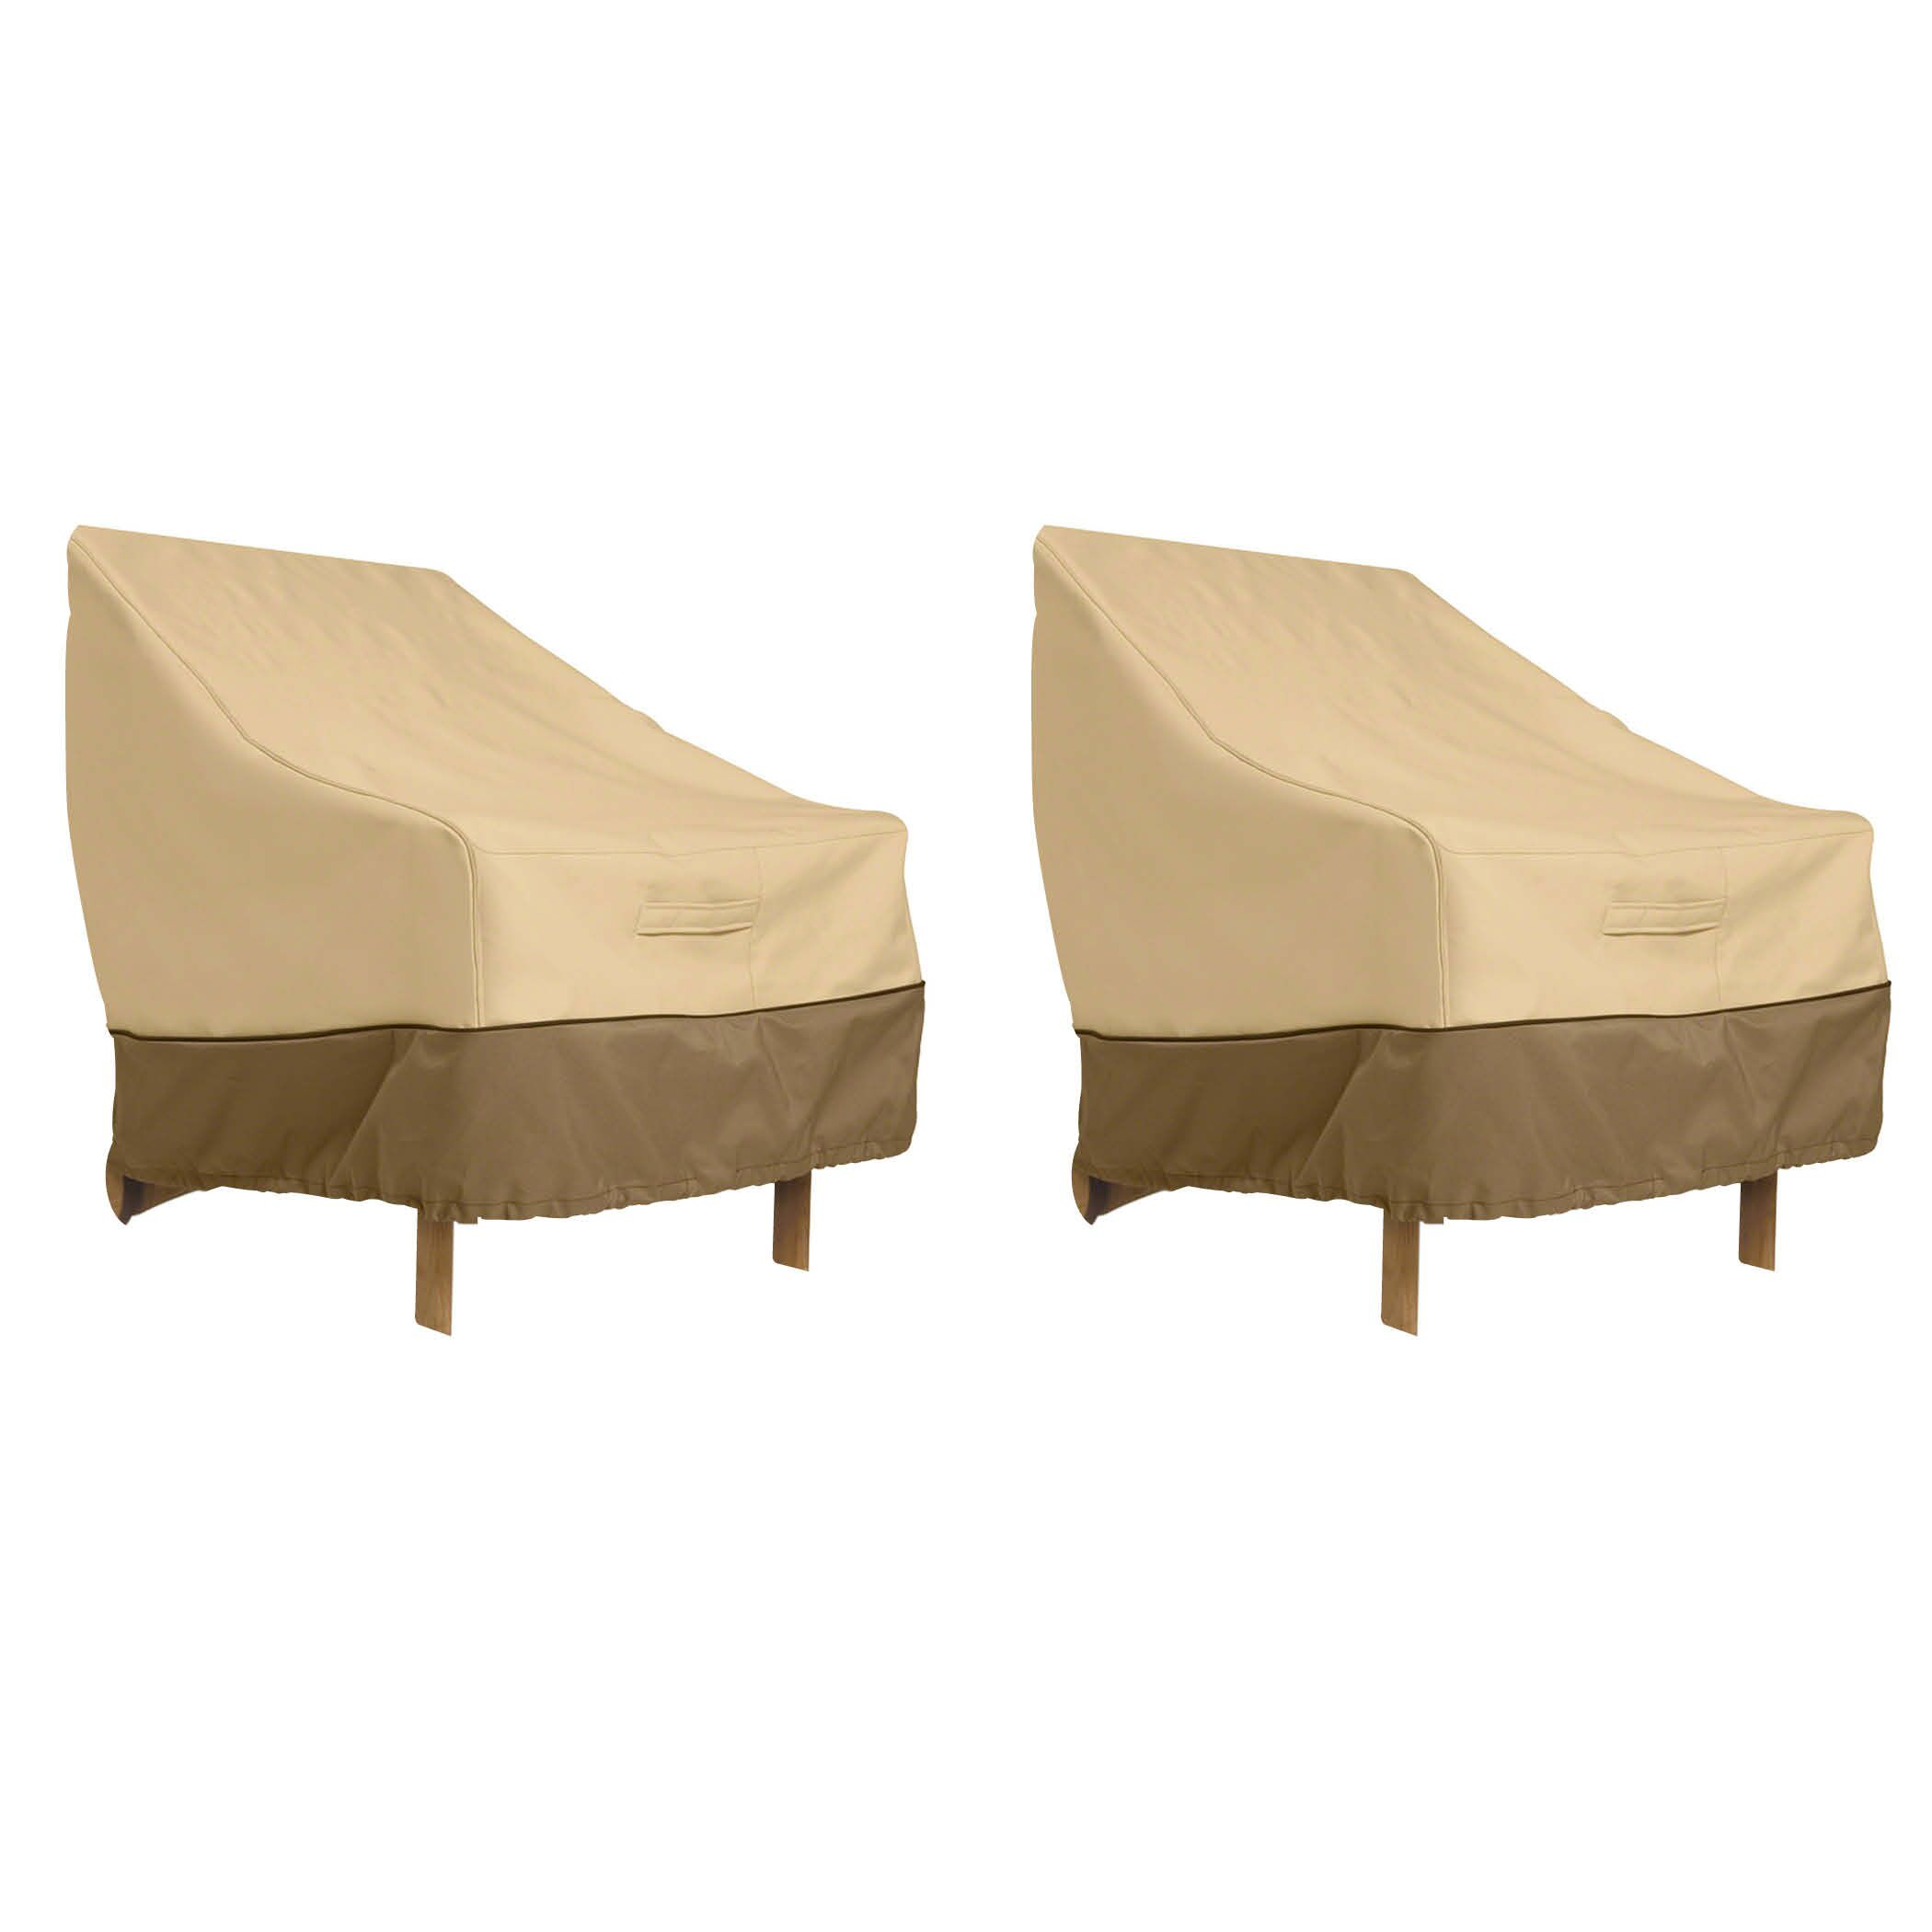 Croteau Patio Chair Cover